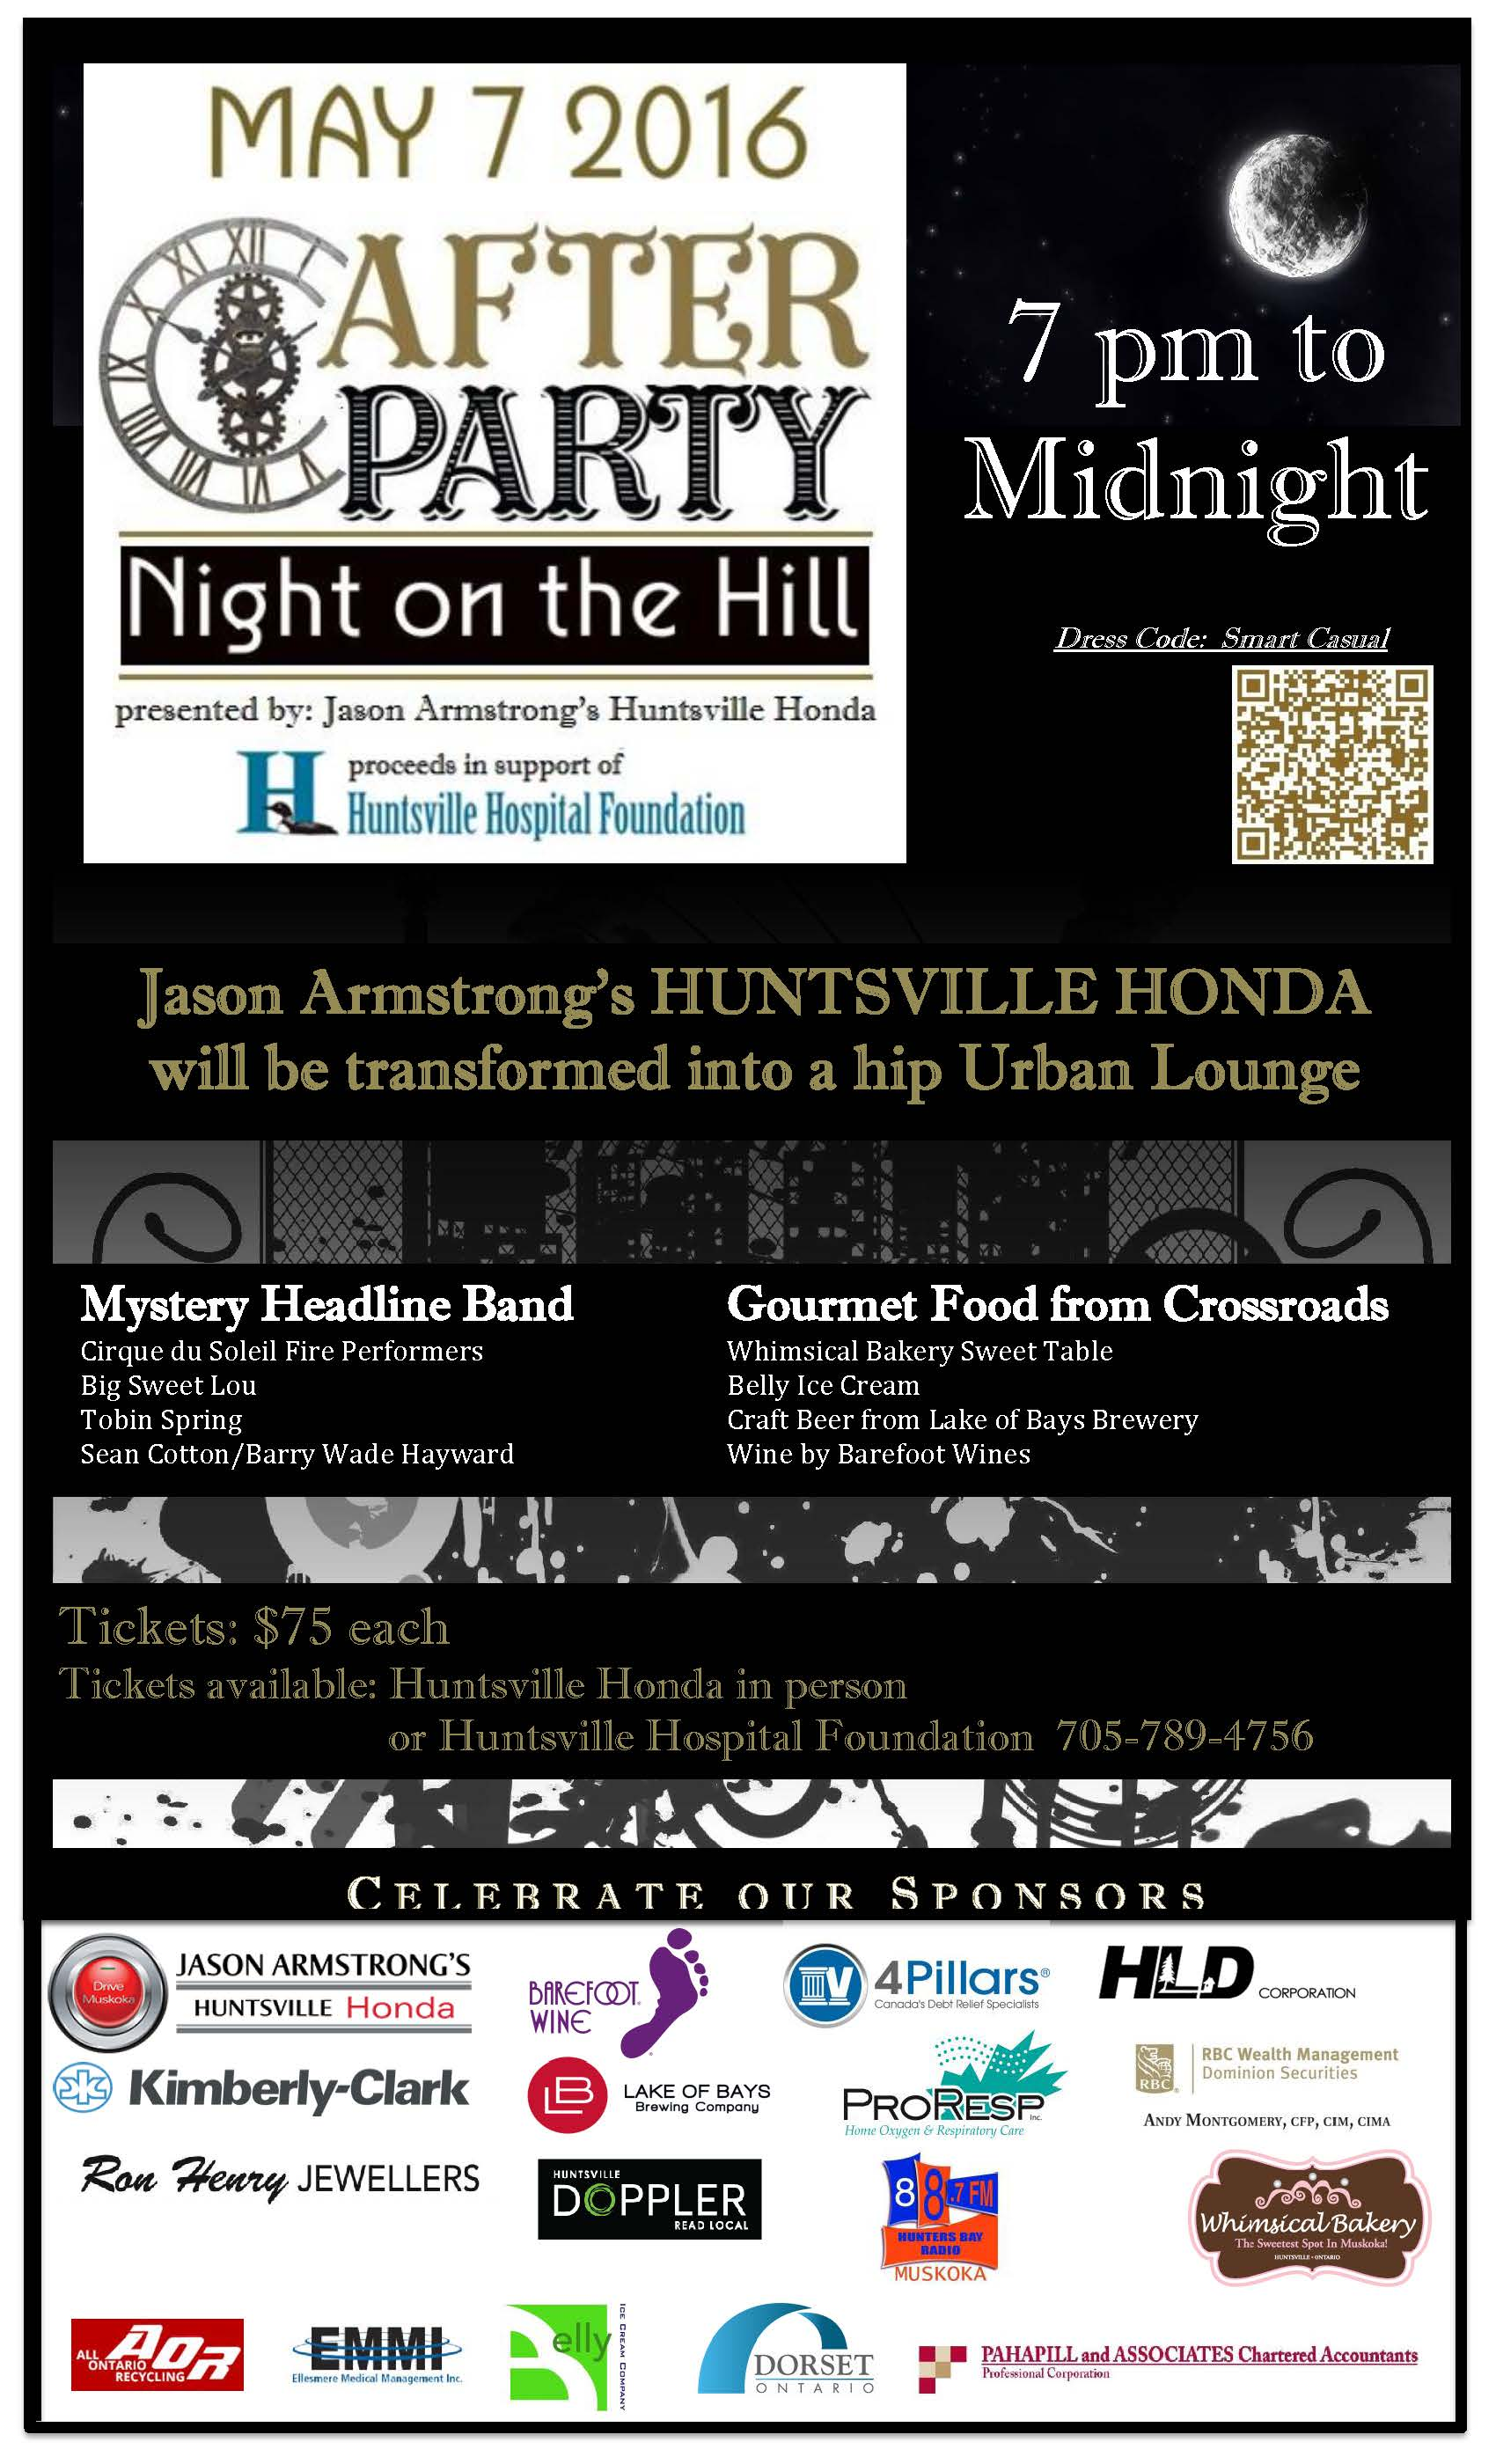 After Party - Night on the Hill flyer sponsors